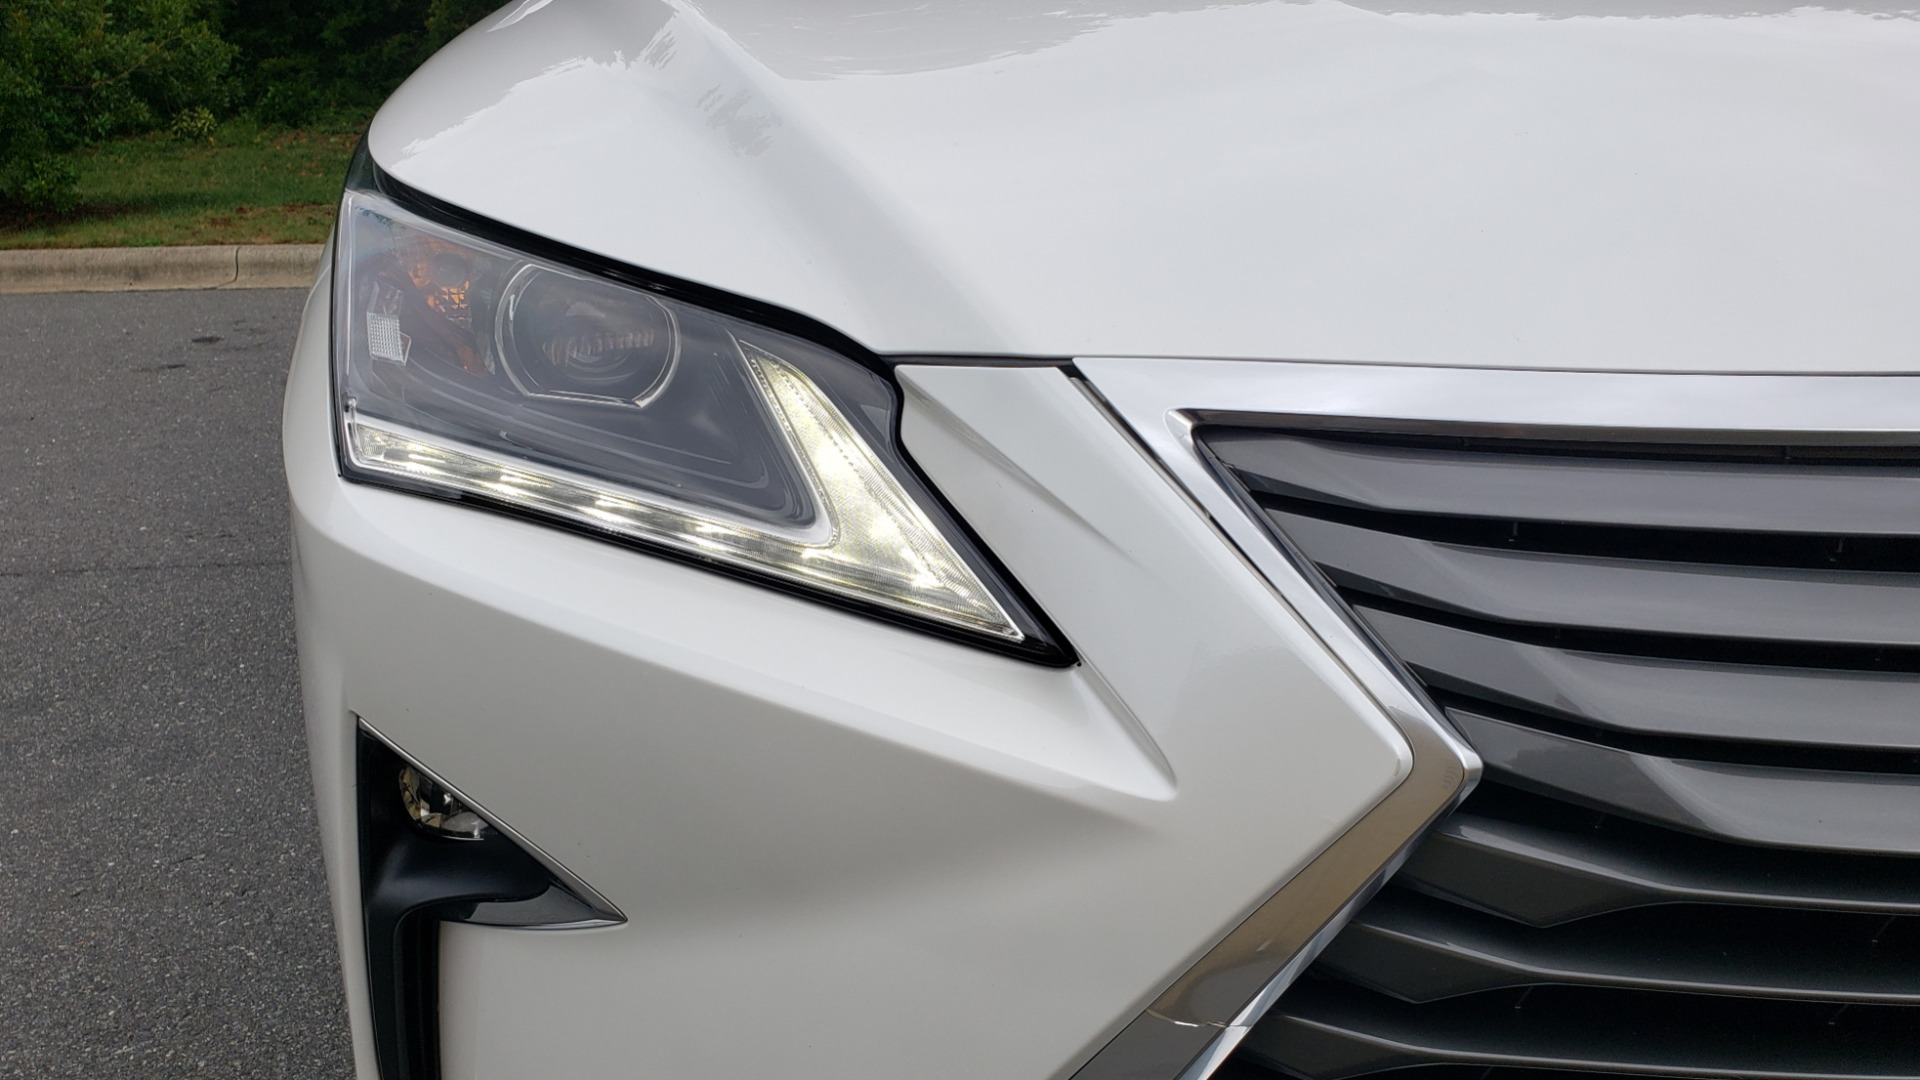 Used 2016 Lexus RX 350 FWD / 4-DR / 3.5L V6 / 8-SPD AUTO / LEATHER / REARVIEW for sale Sold at Formula Imports in Charlotte NC 28227 24